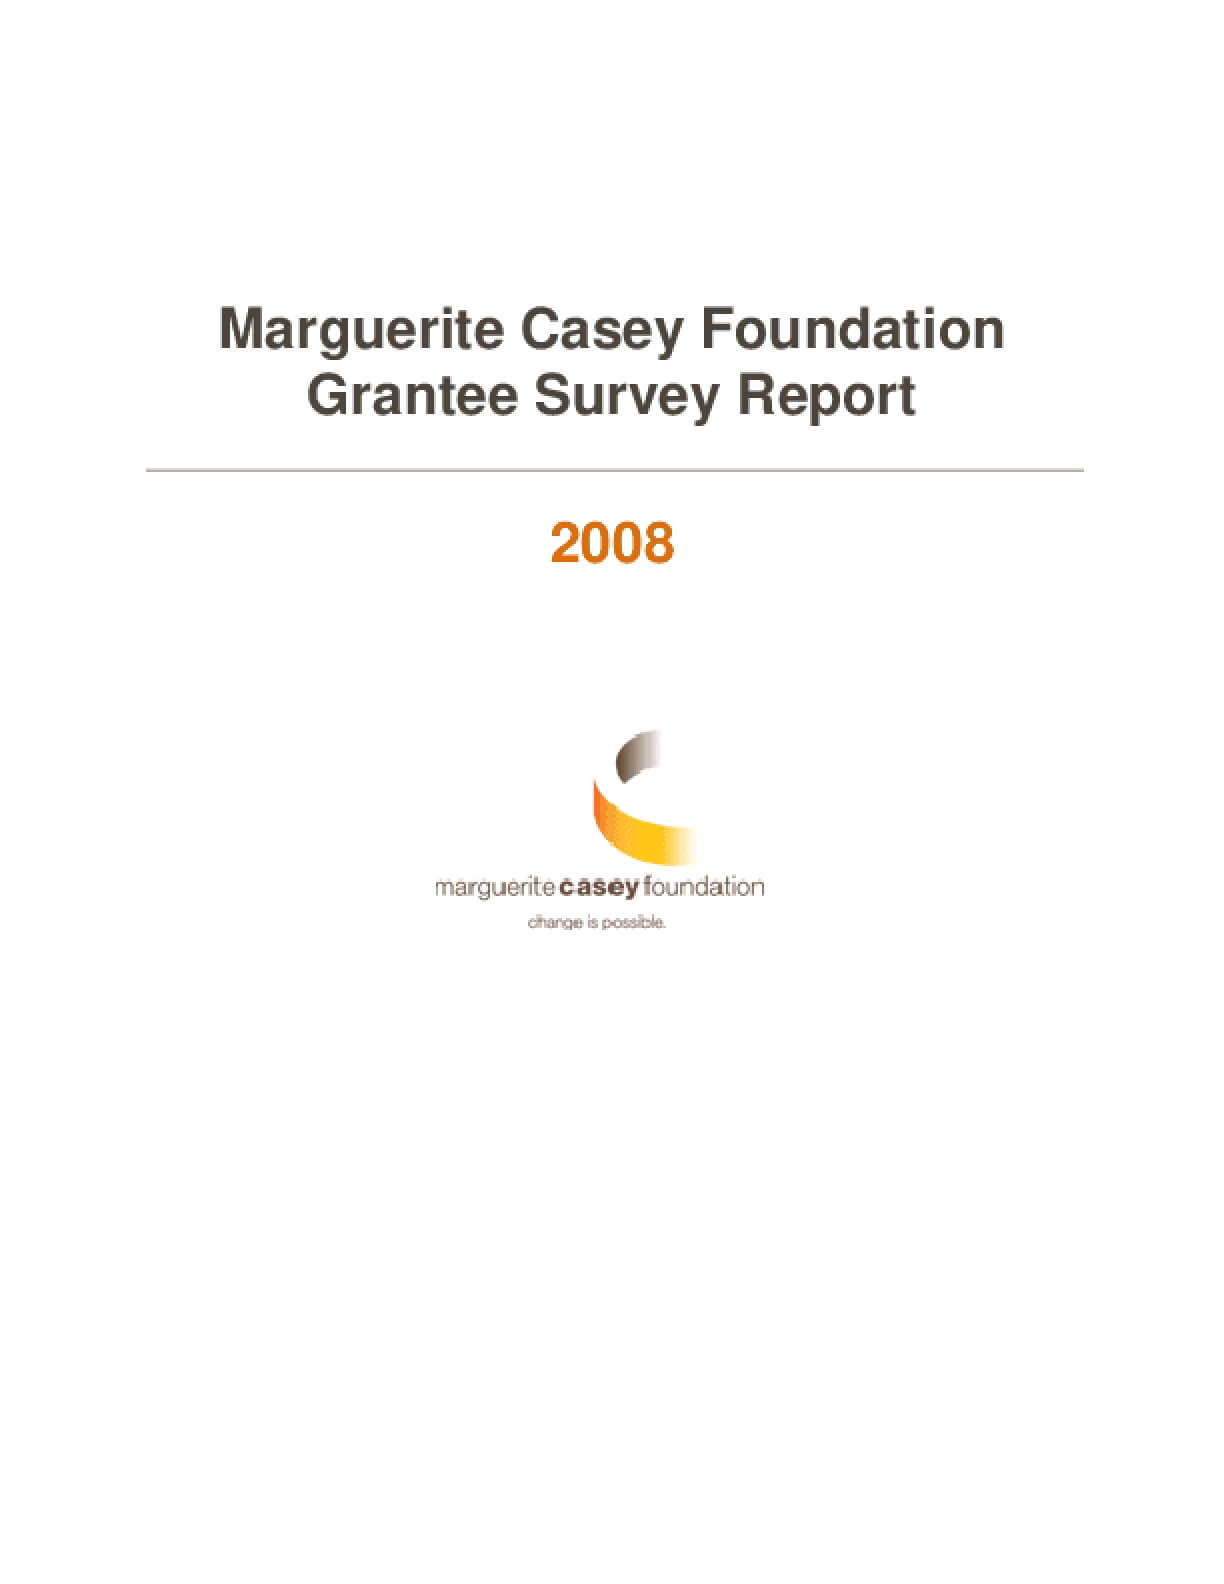 2008 Marguerite Casey Foundation Grantee Survey Report